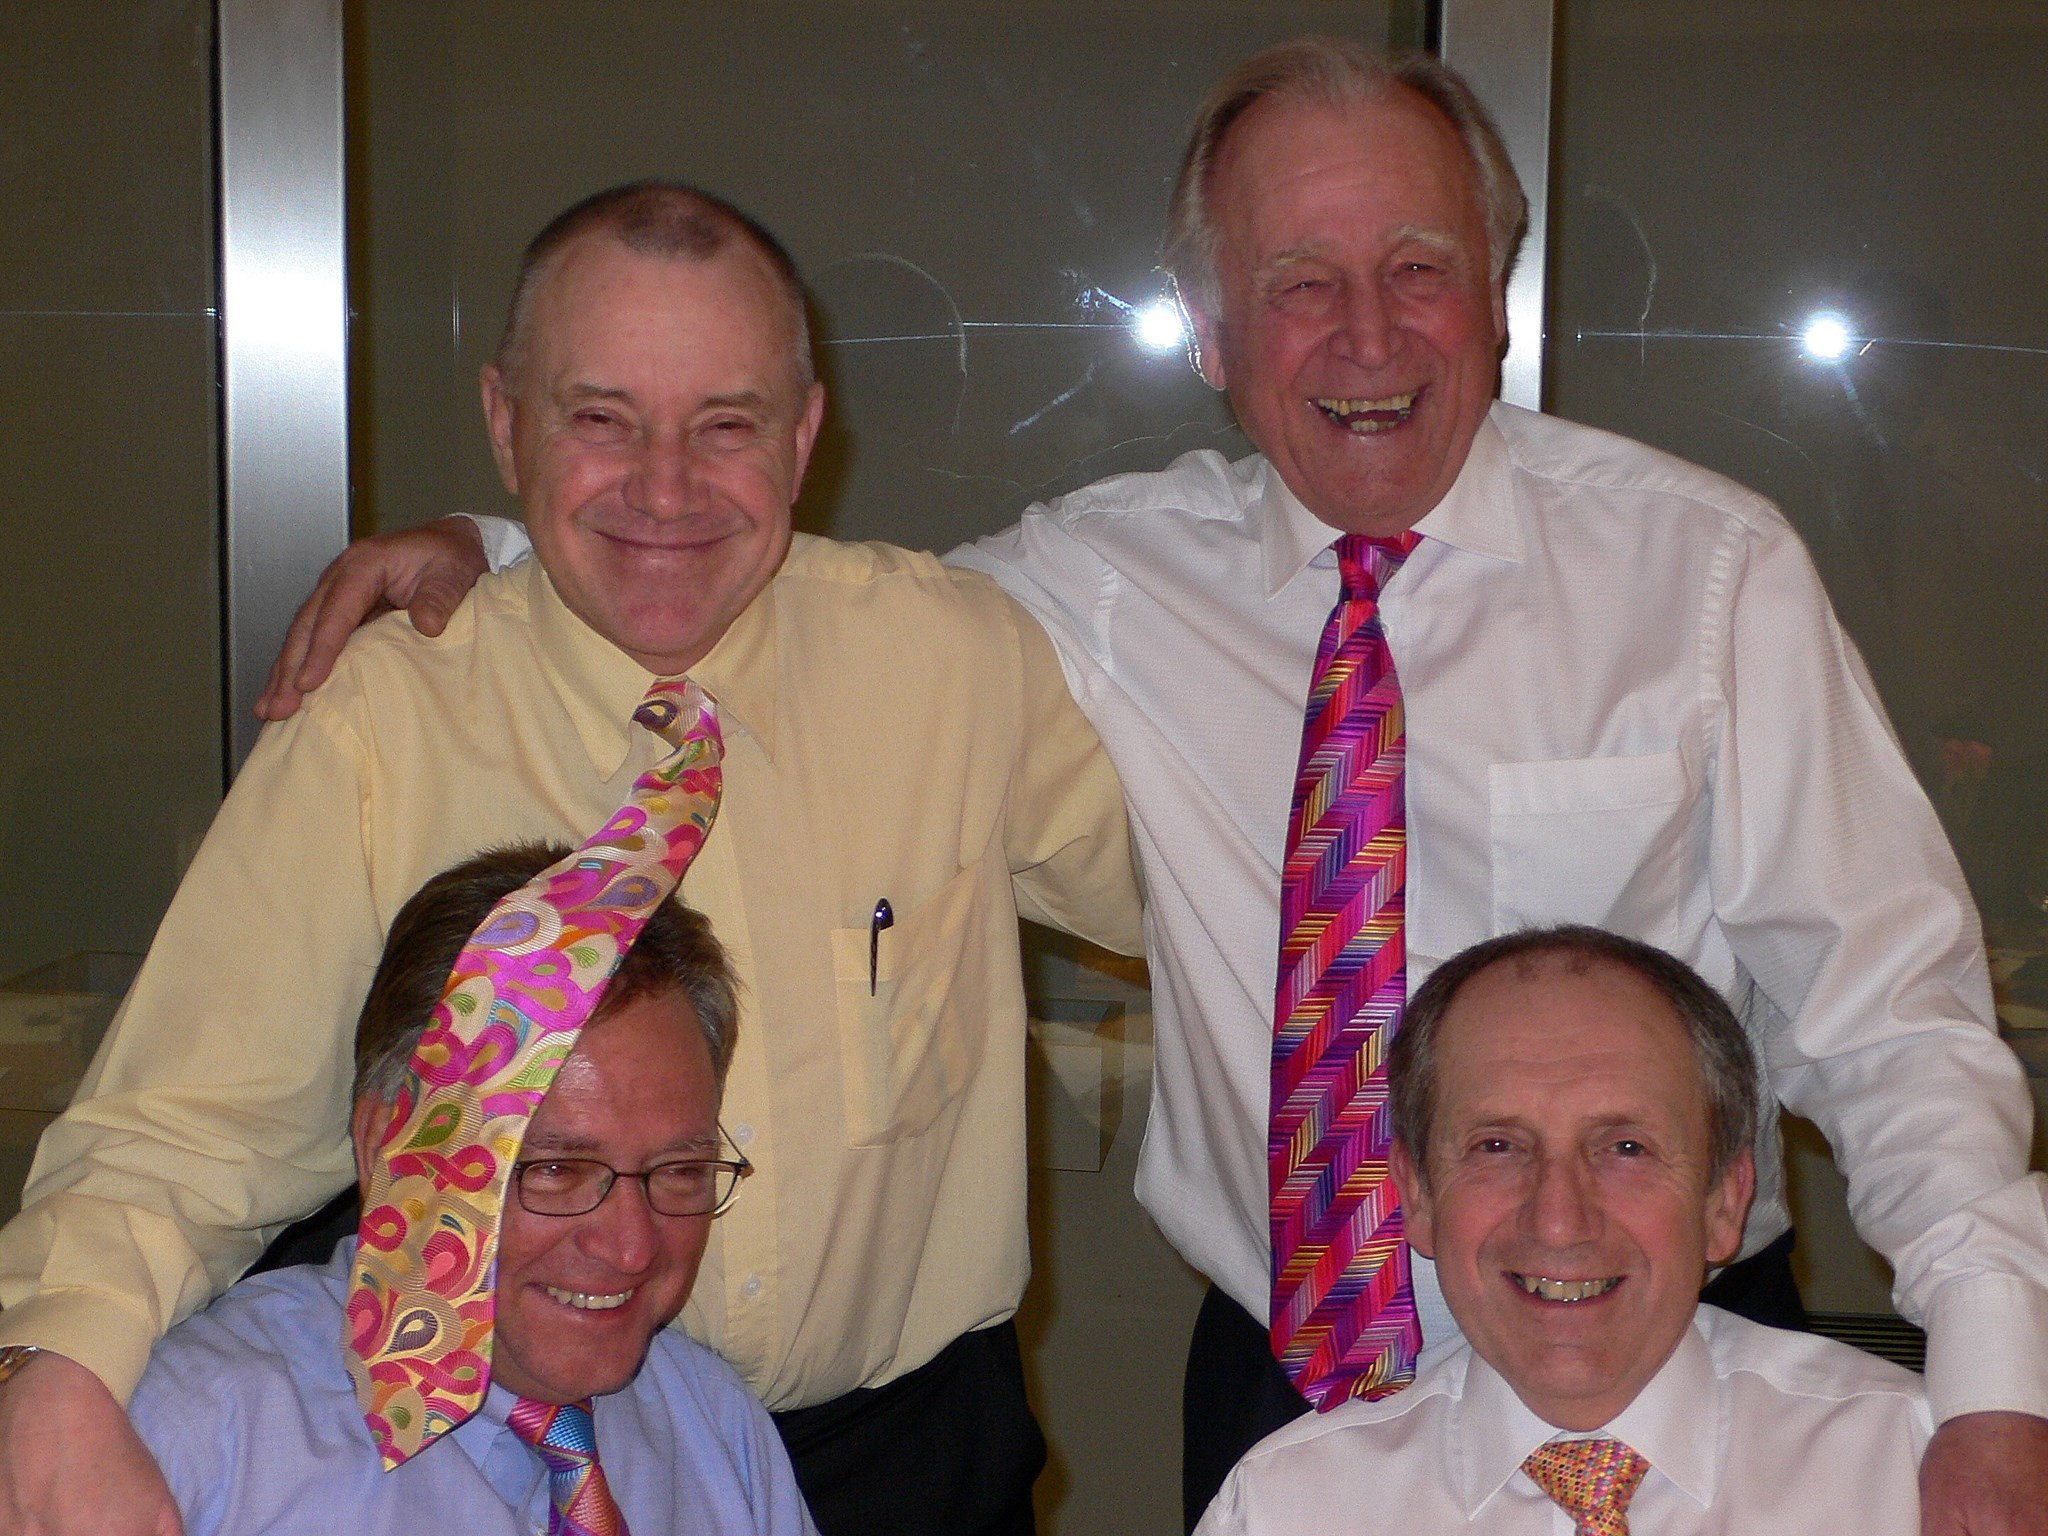 Loud Tie competition 2007. Hughie with Gero, David & Graham. Another fun night!